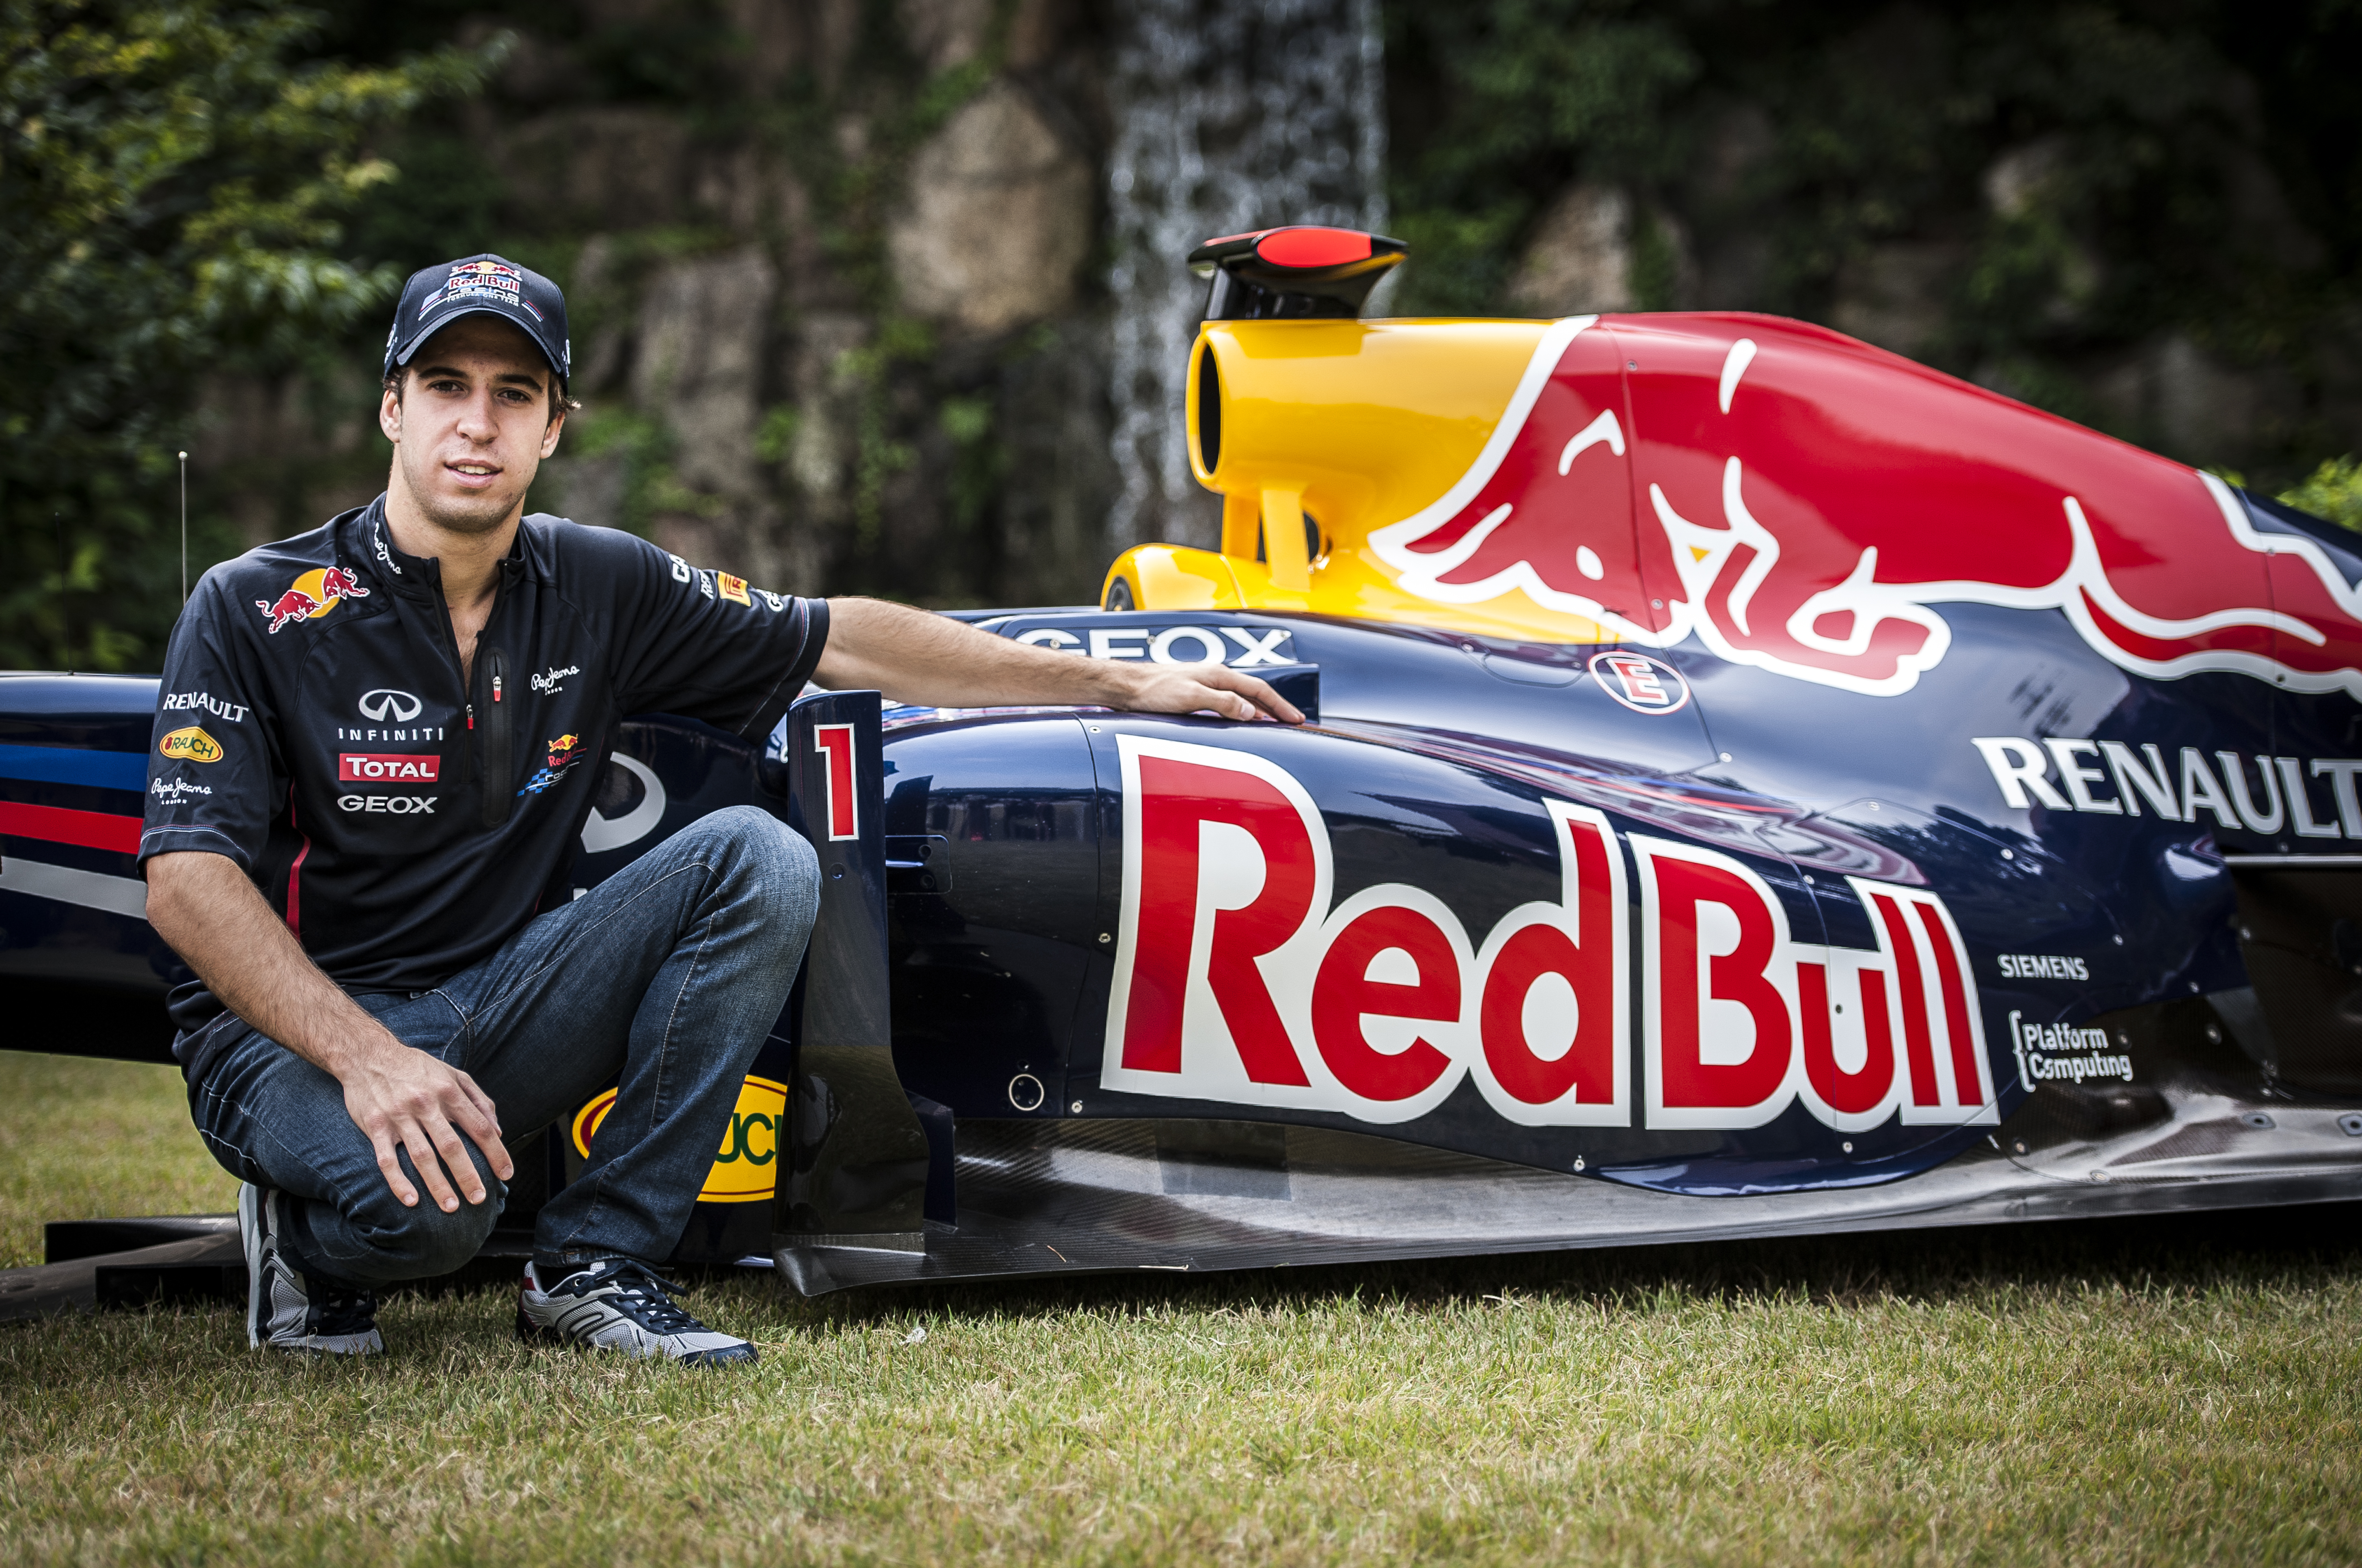 Antonio Felix Da Costa Red Bull F1 car 2013